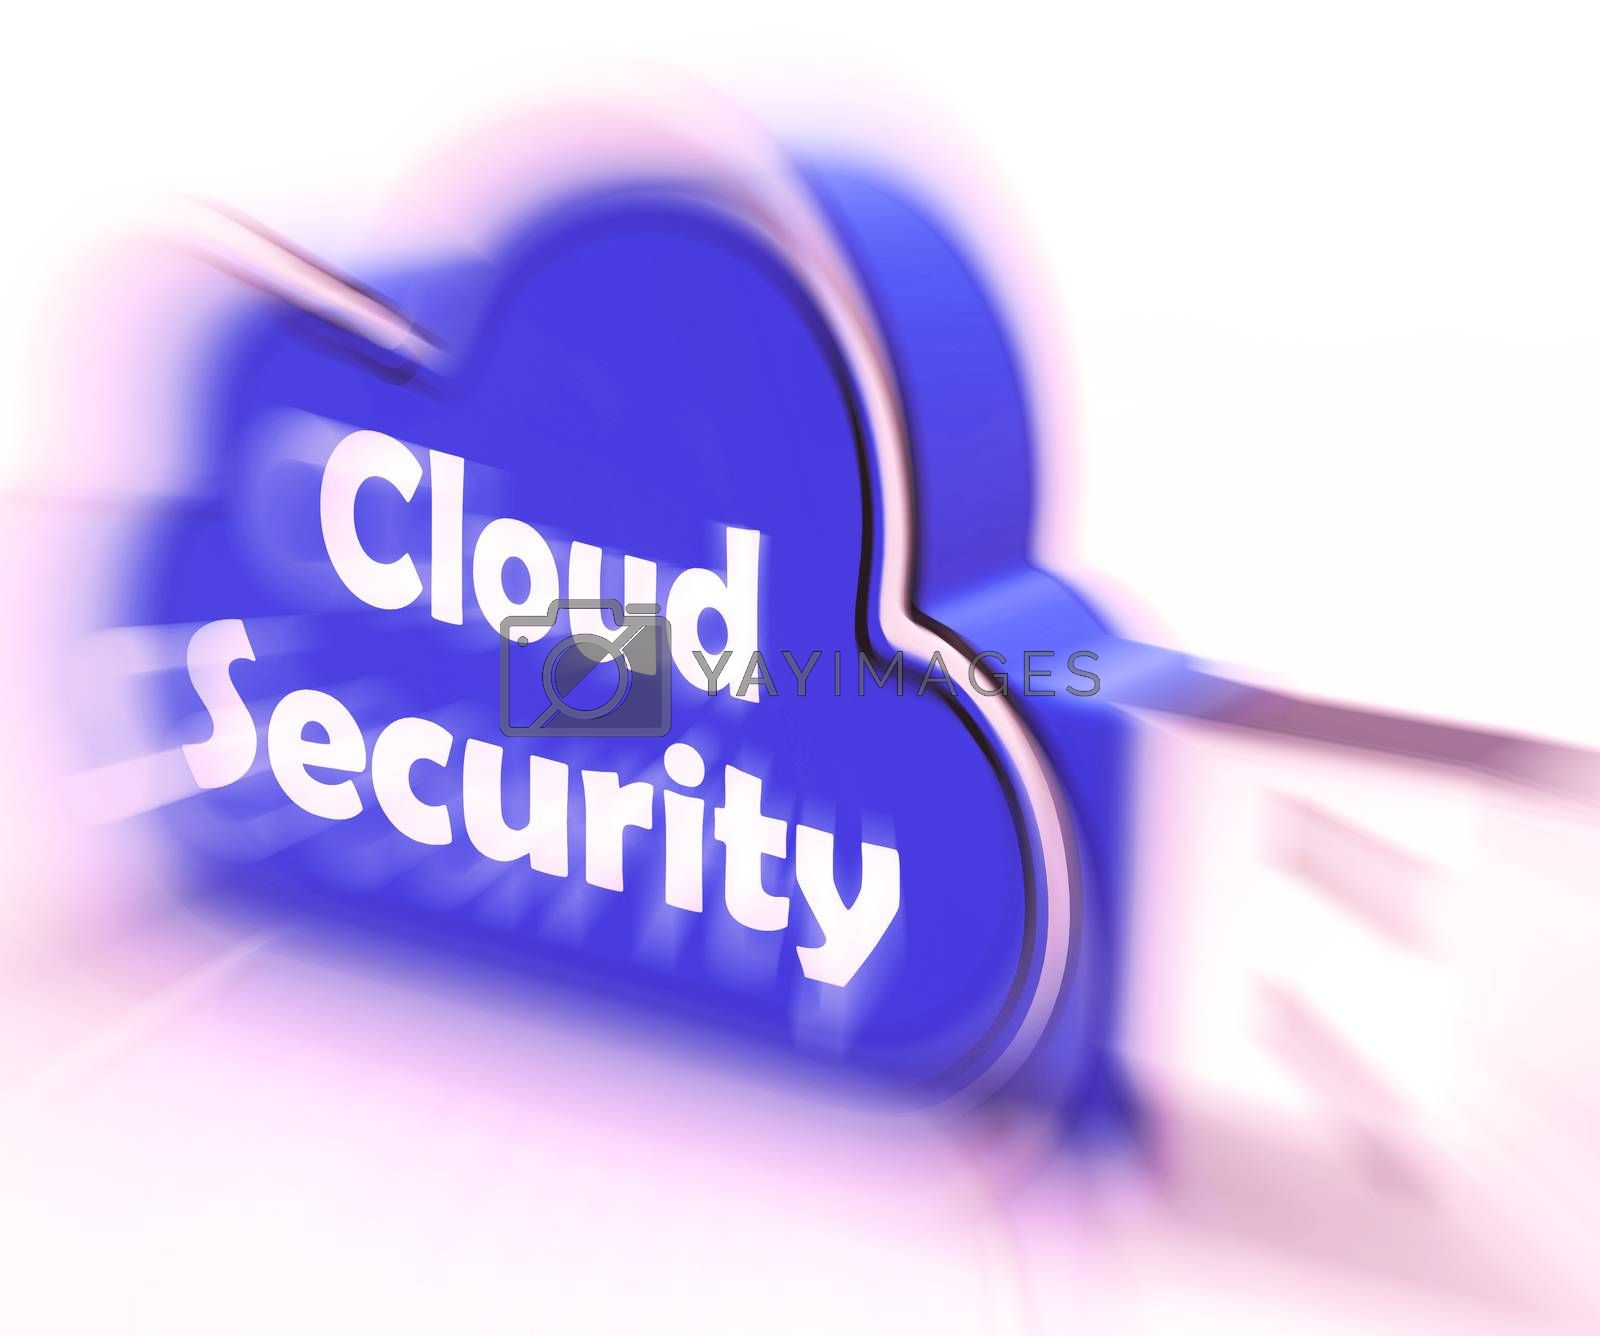 Cloud Security Cloud USB drive Means Online Security Or Privacy  by stuartmiles